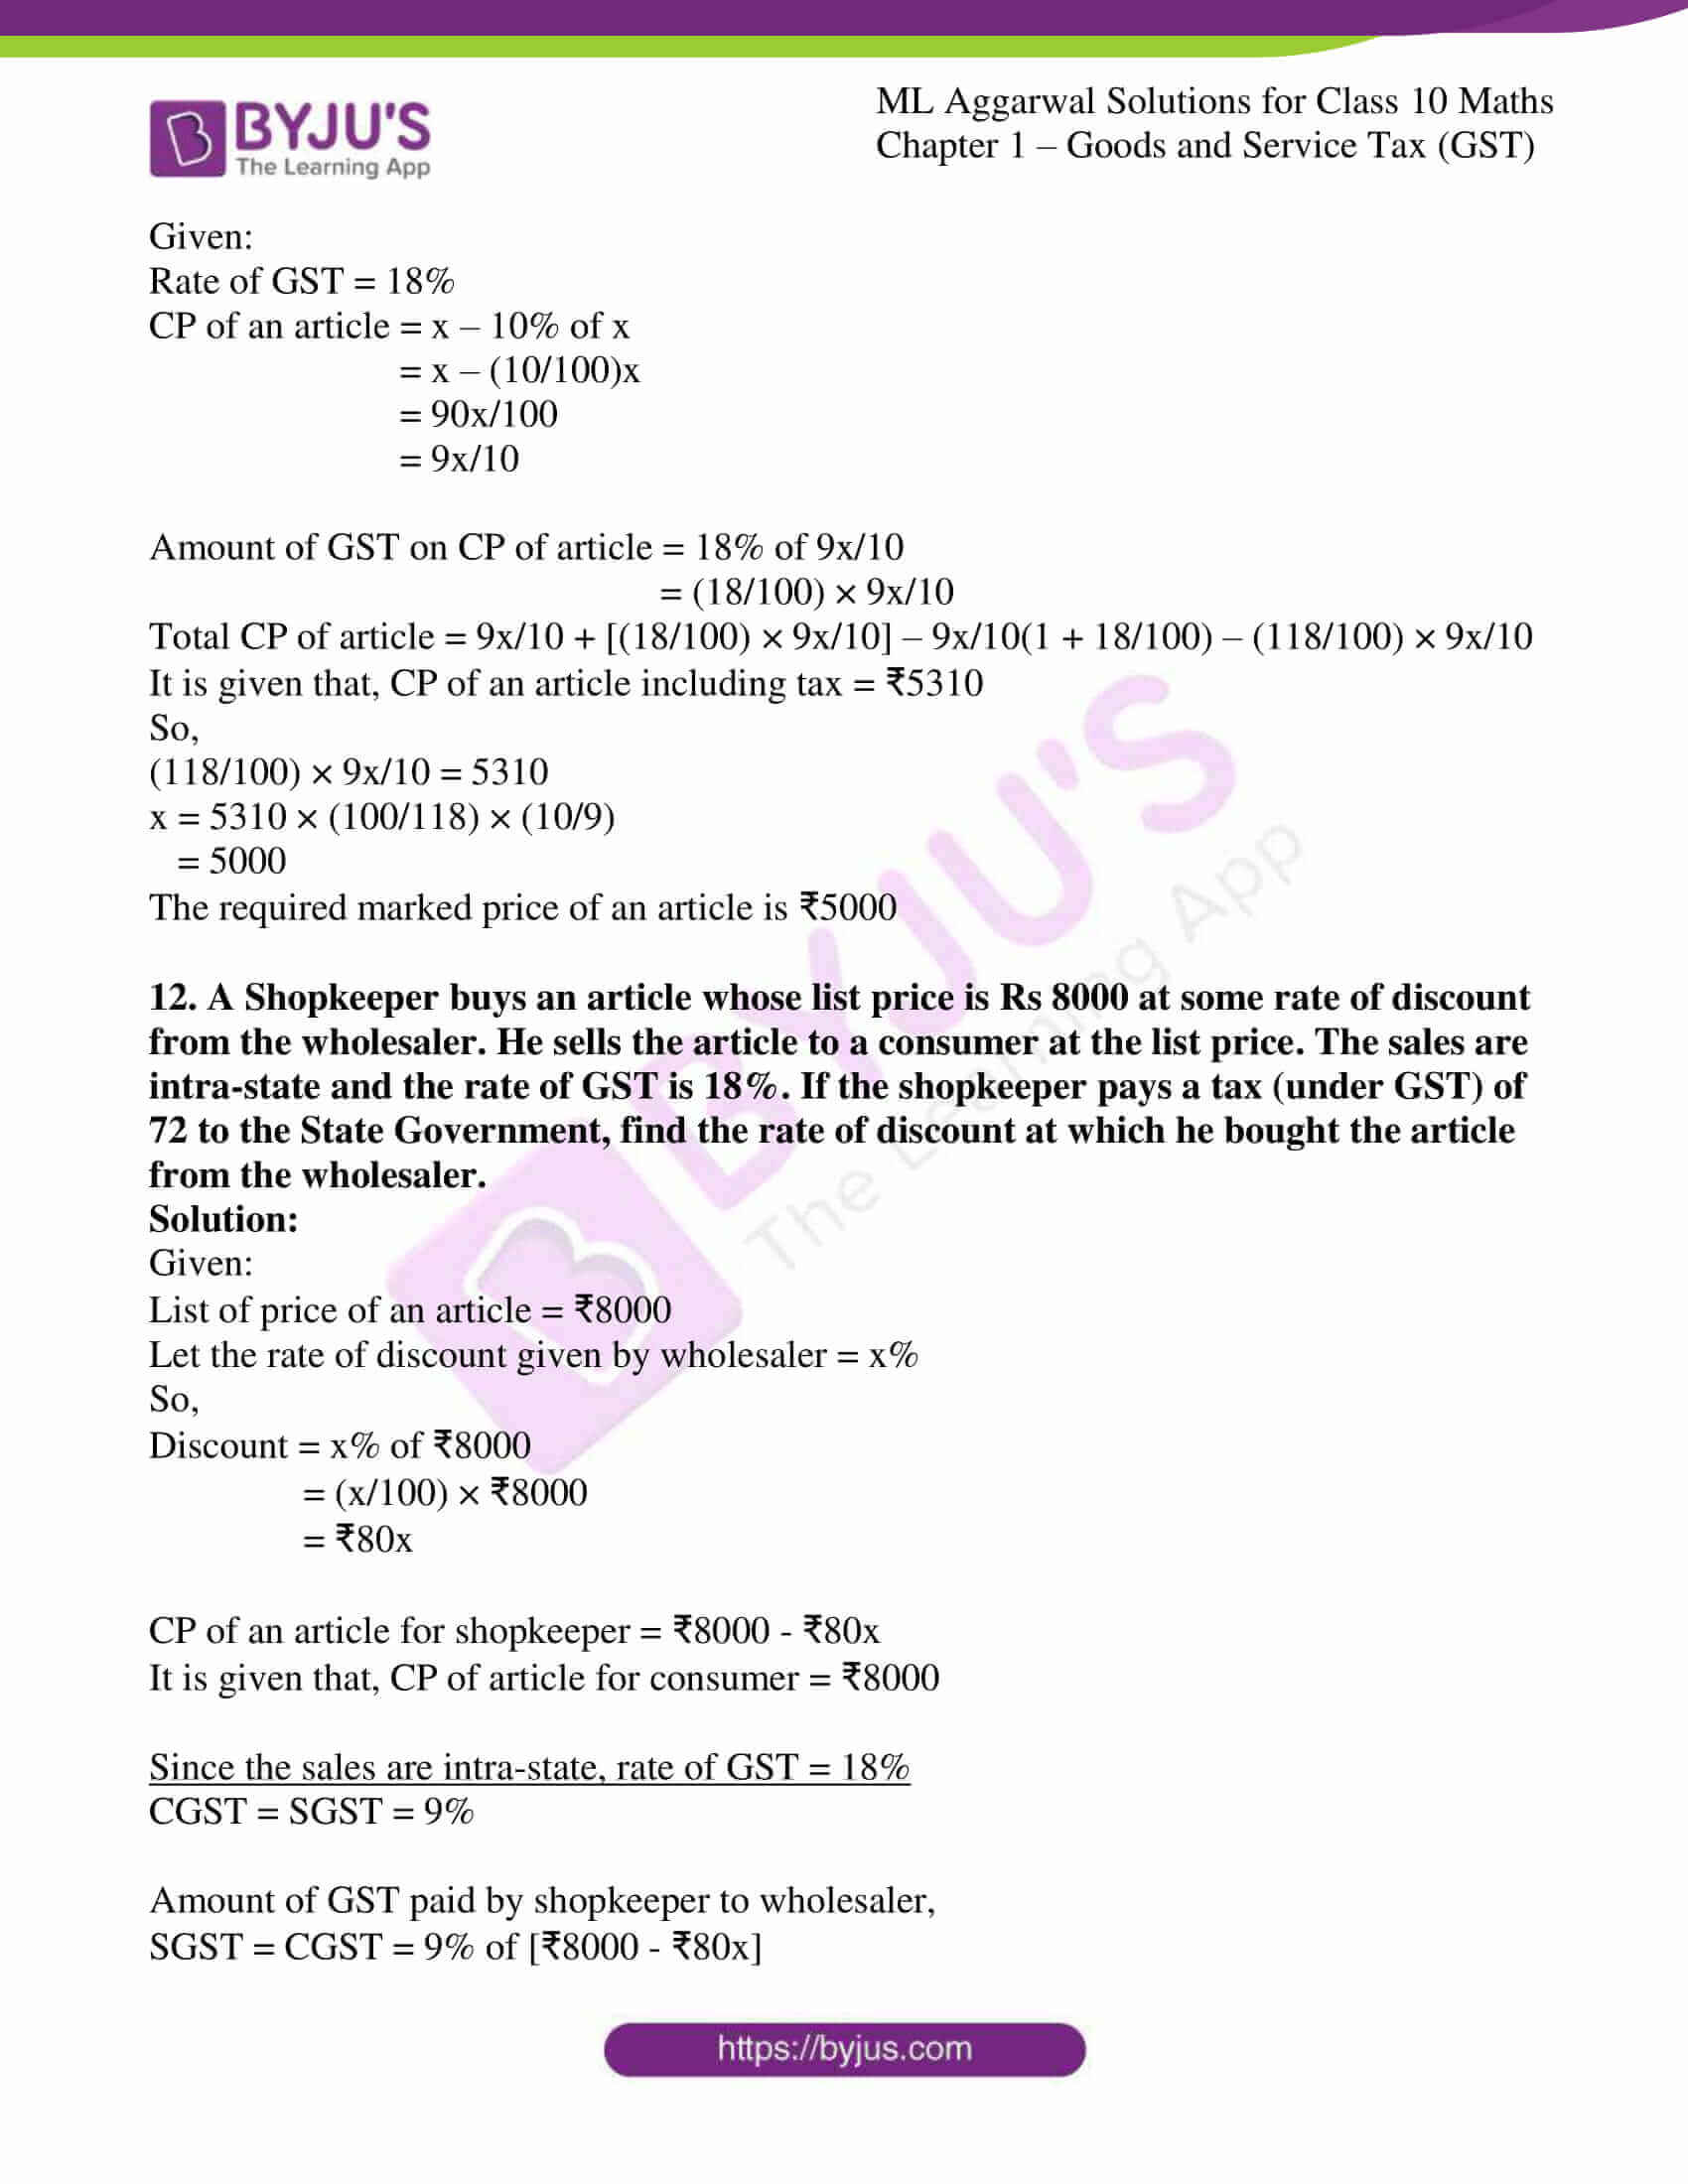 ml aggarwal solutions class 10 maths chapter 1 14